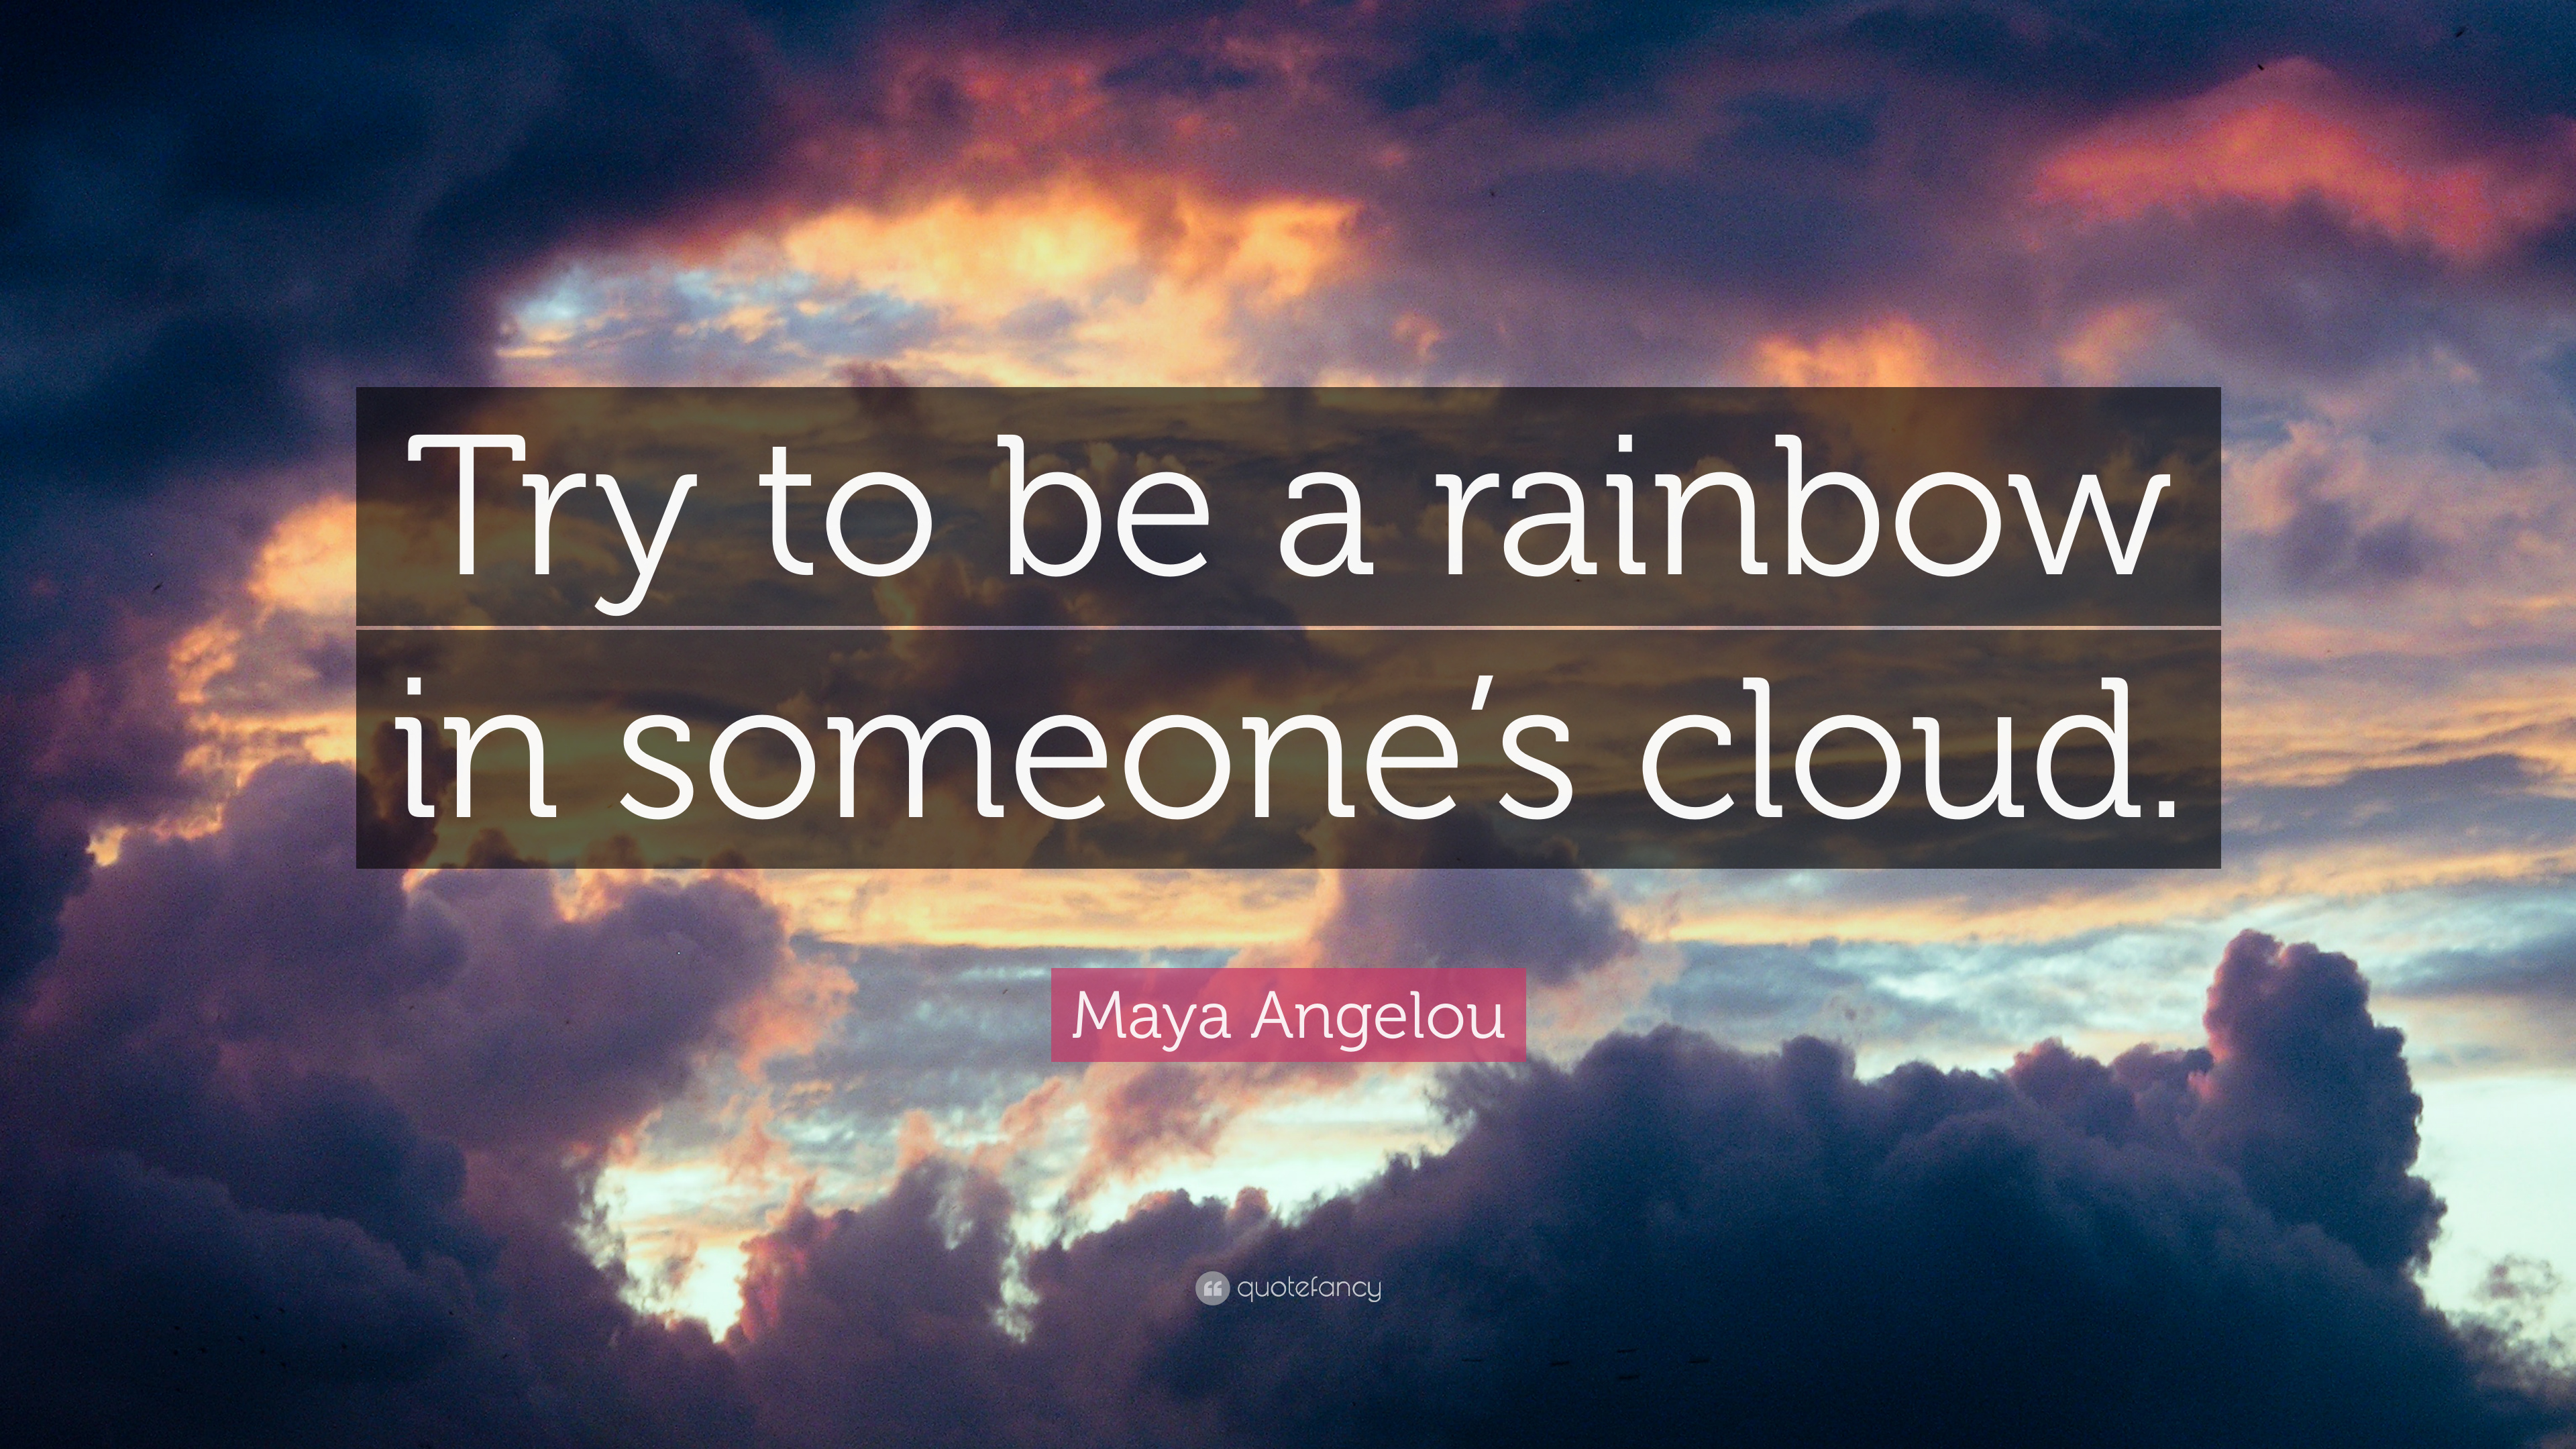 Maya Angelou Quote Try To Be A Rainbow In Someones Cloud 19